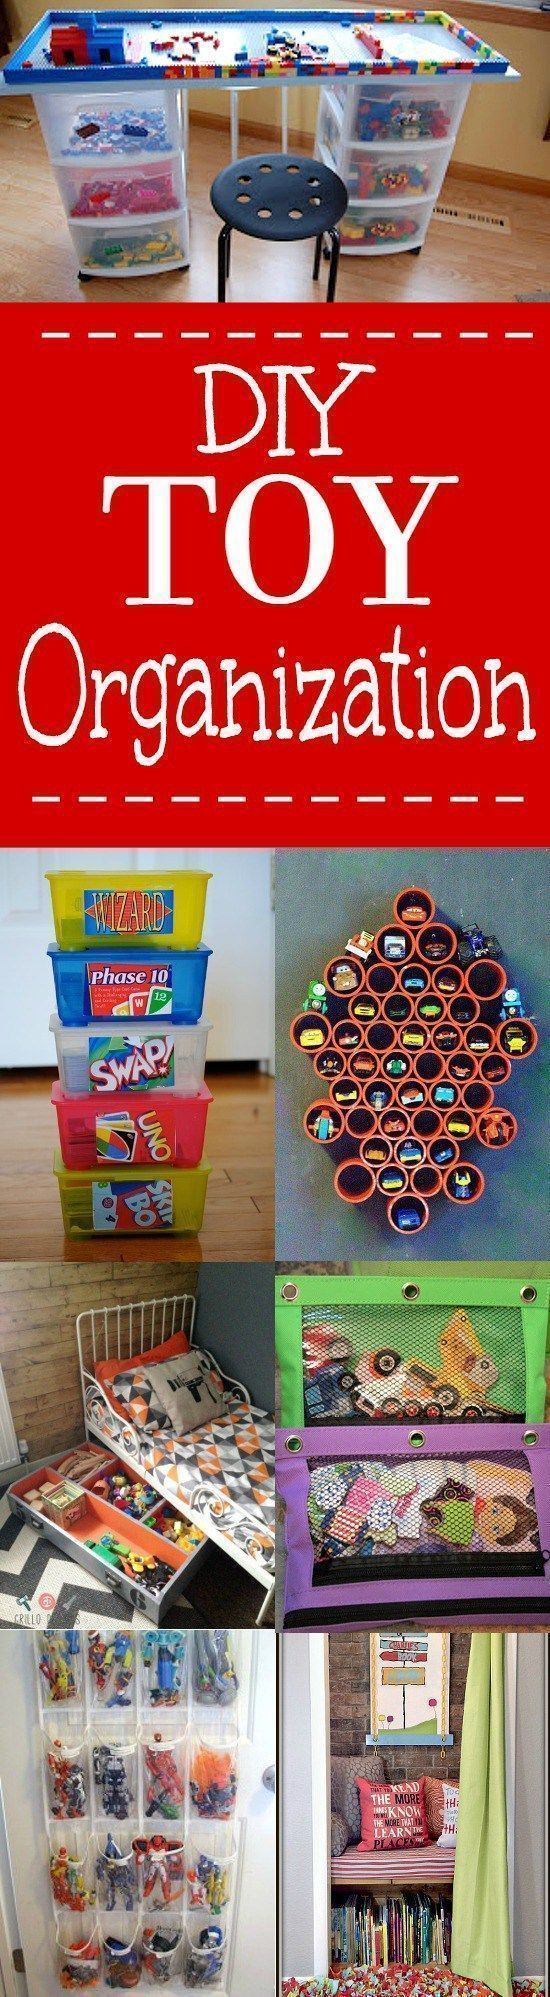 DIY Toy Organization Ideas for Kids and Playrooms - Don't let the toys take over! Organize your kids' playroom with these clever DIY Toy Organization Ideas for kids' bedrooms and playrooms. Love this! We need this so bad! #kidsplayroom